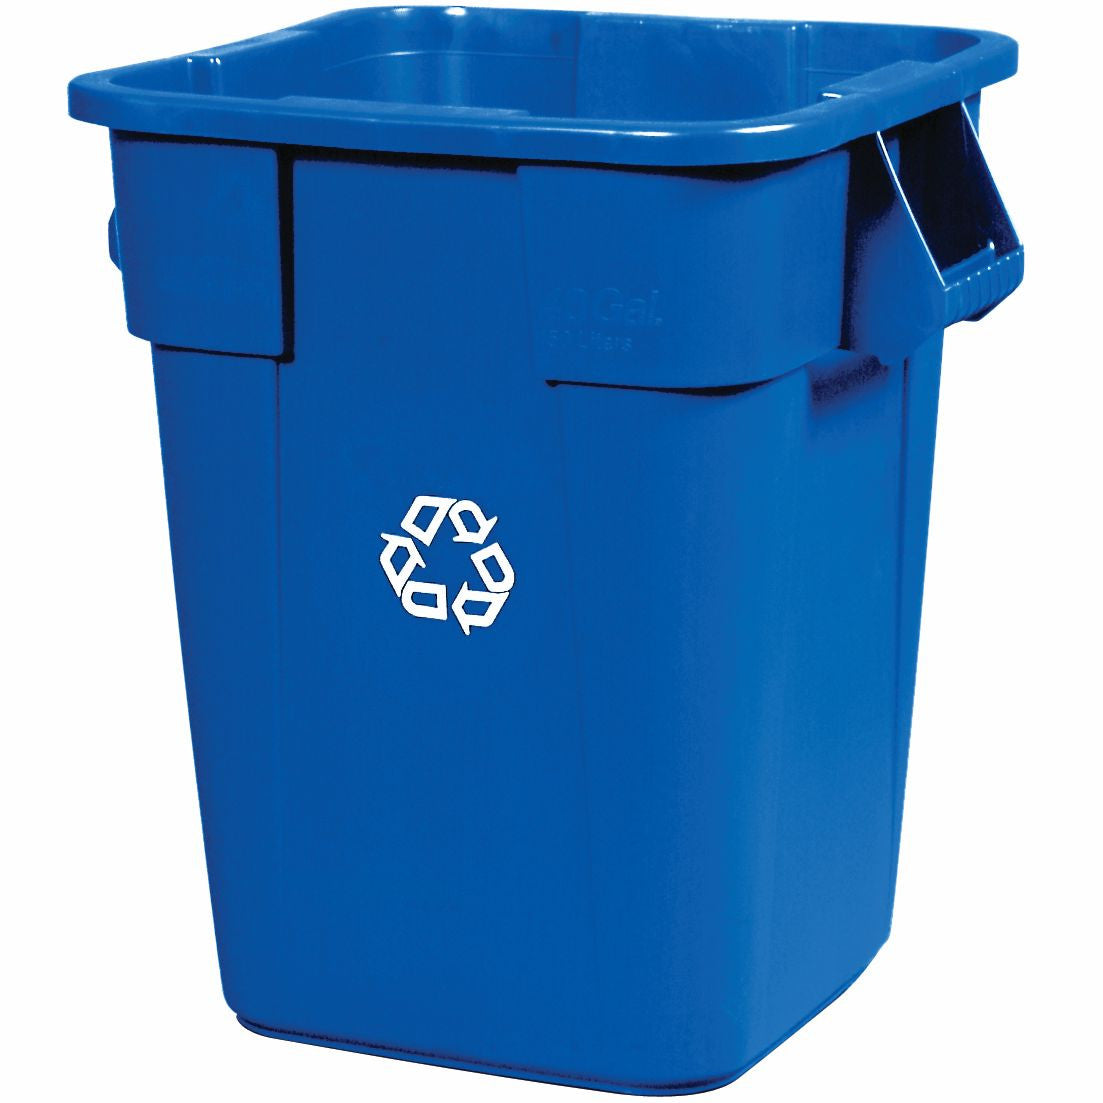 Sq RECYCLING CONTAINER BLUE